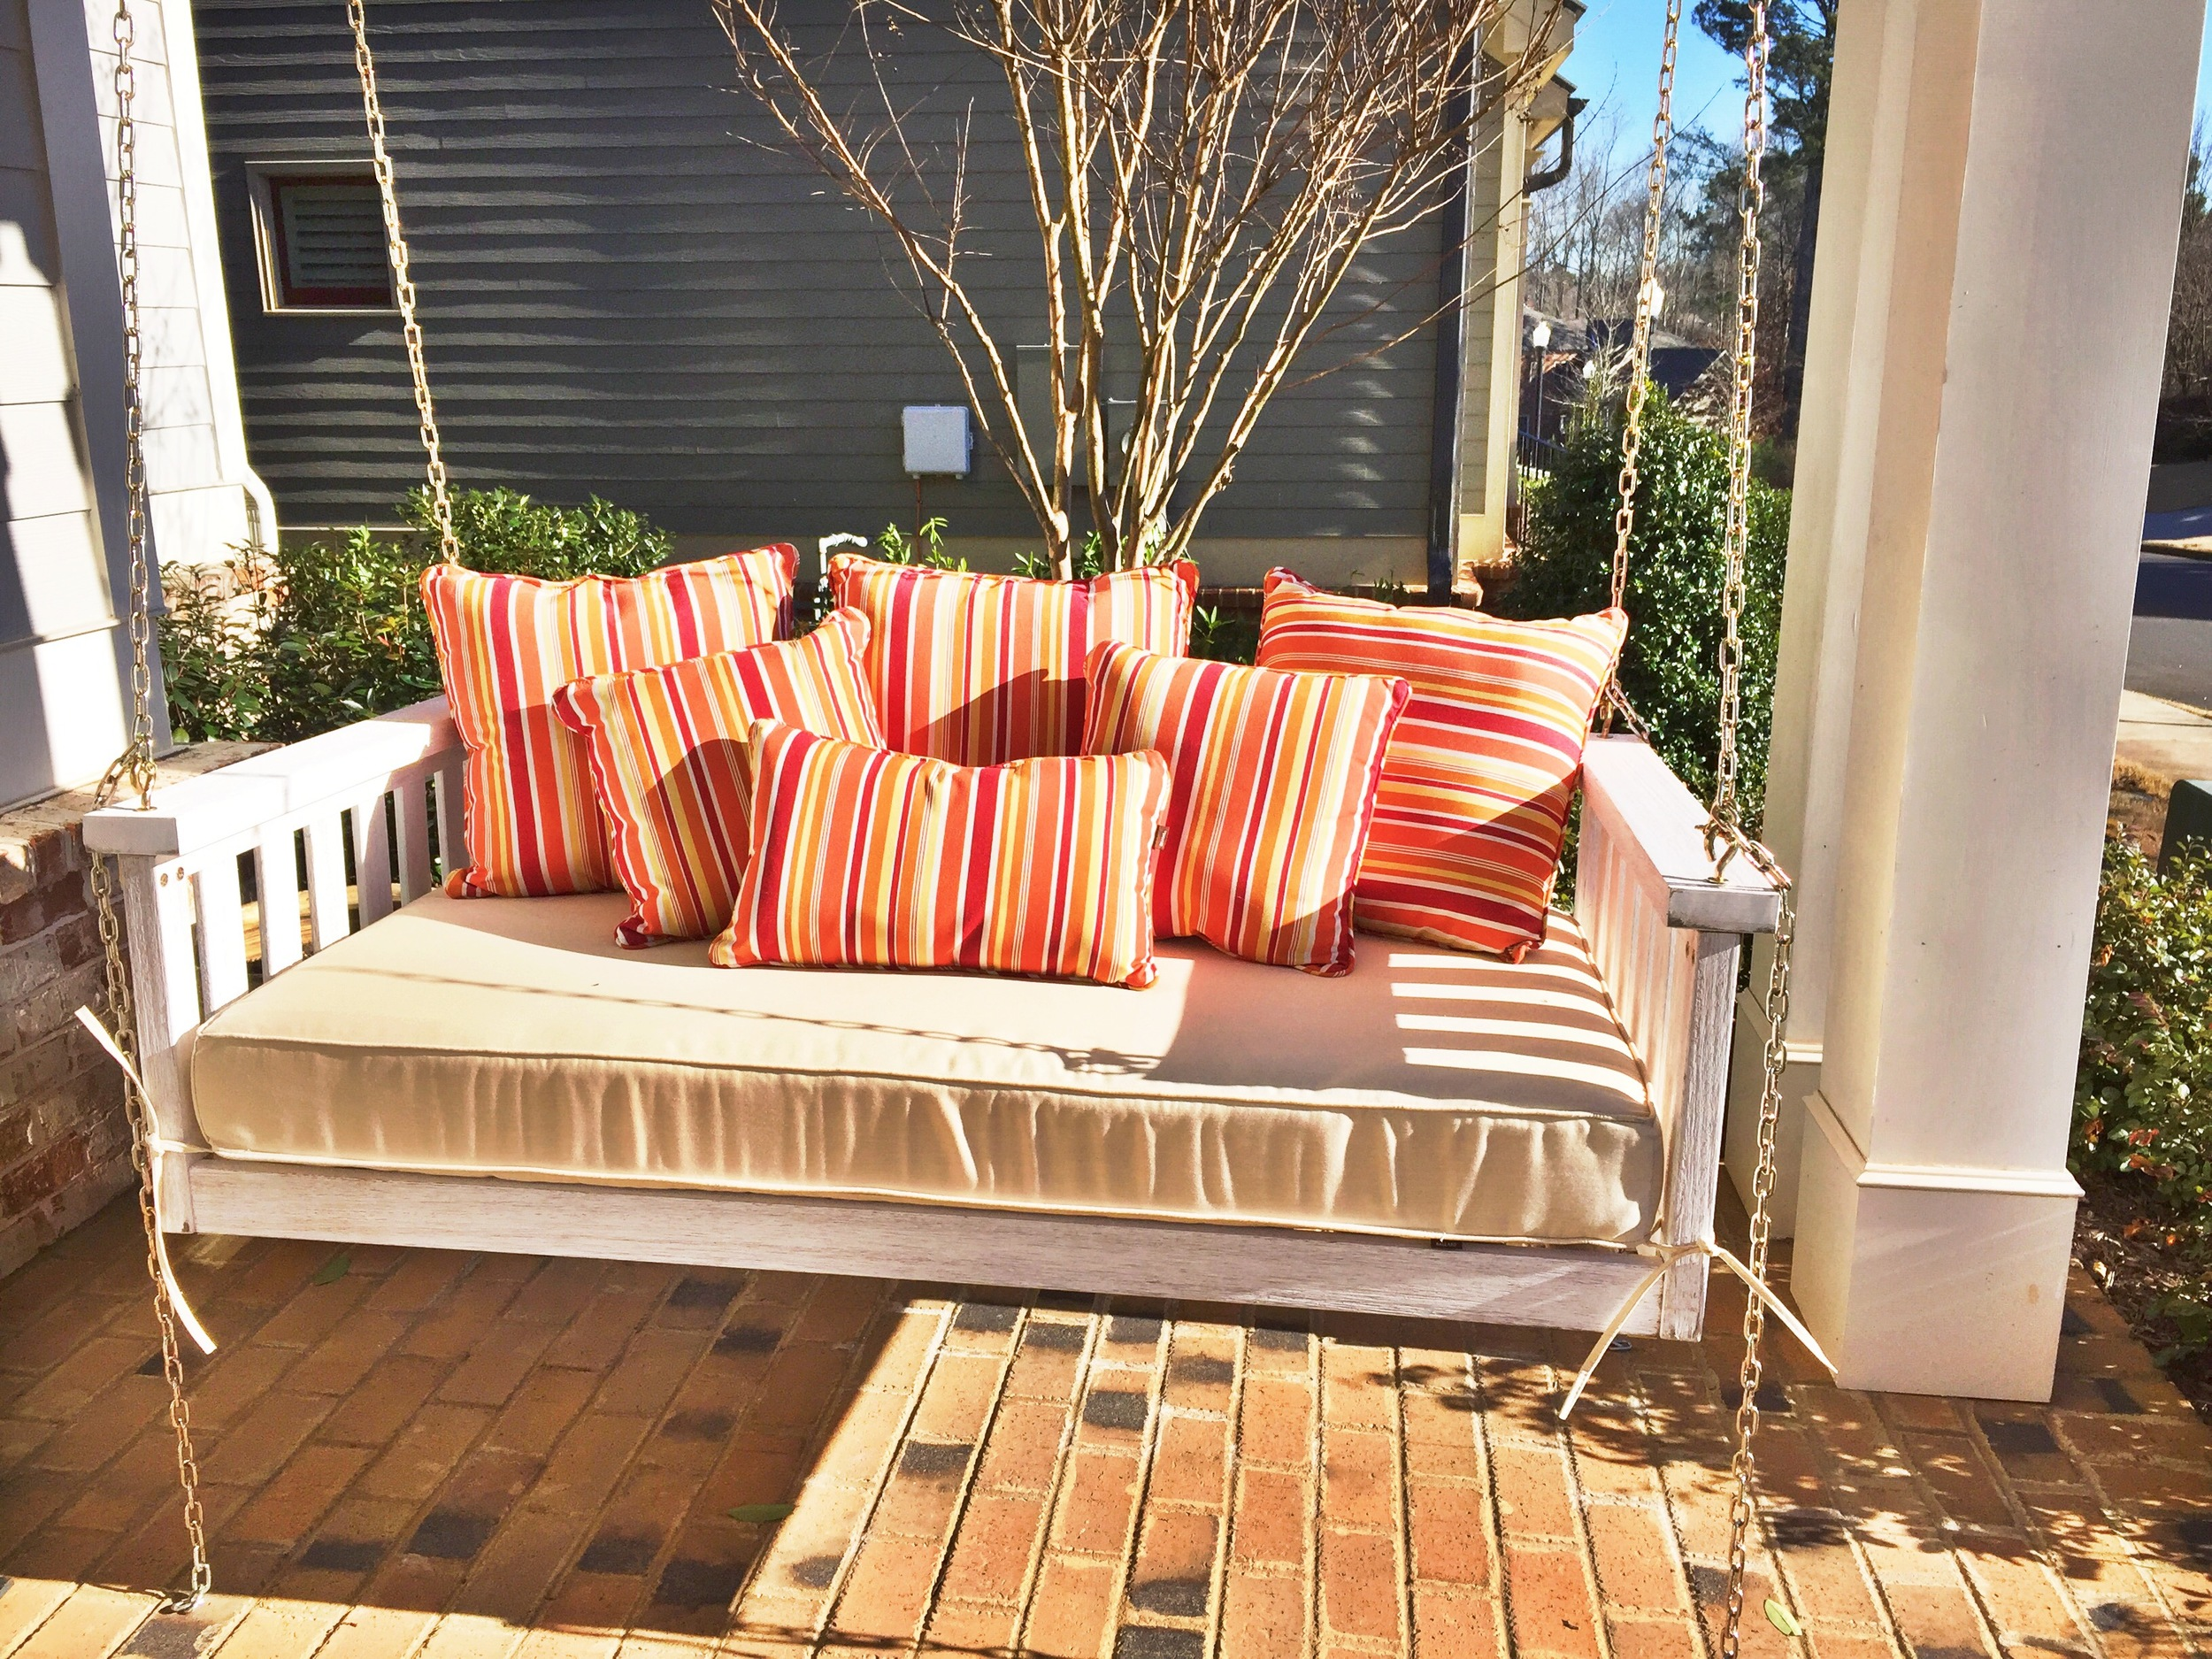 Join me on my new front porch swing soon...(Ballard's Outlet at 70% off)